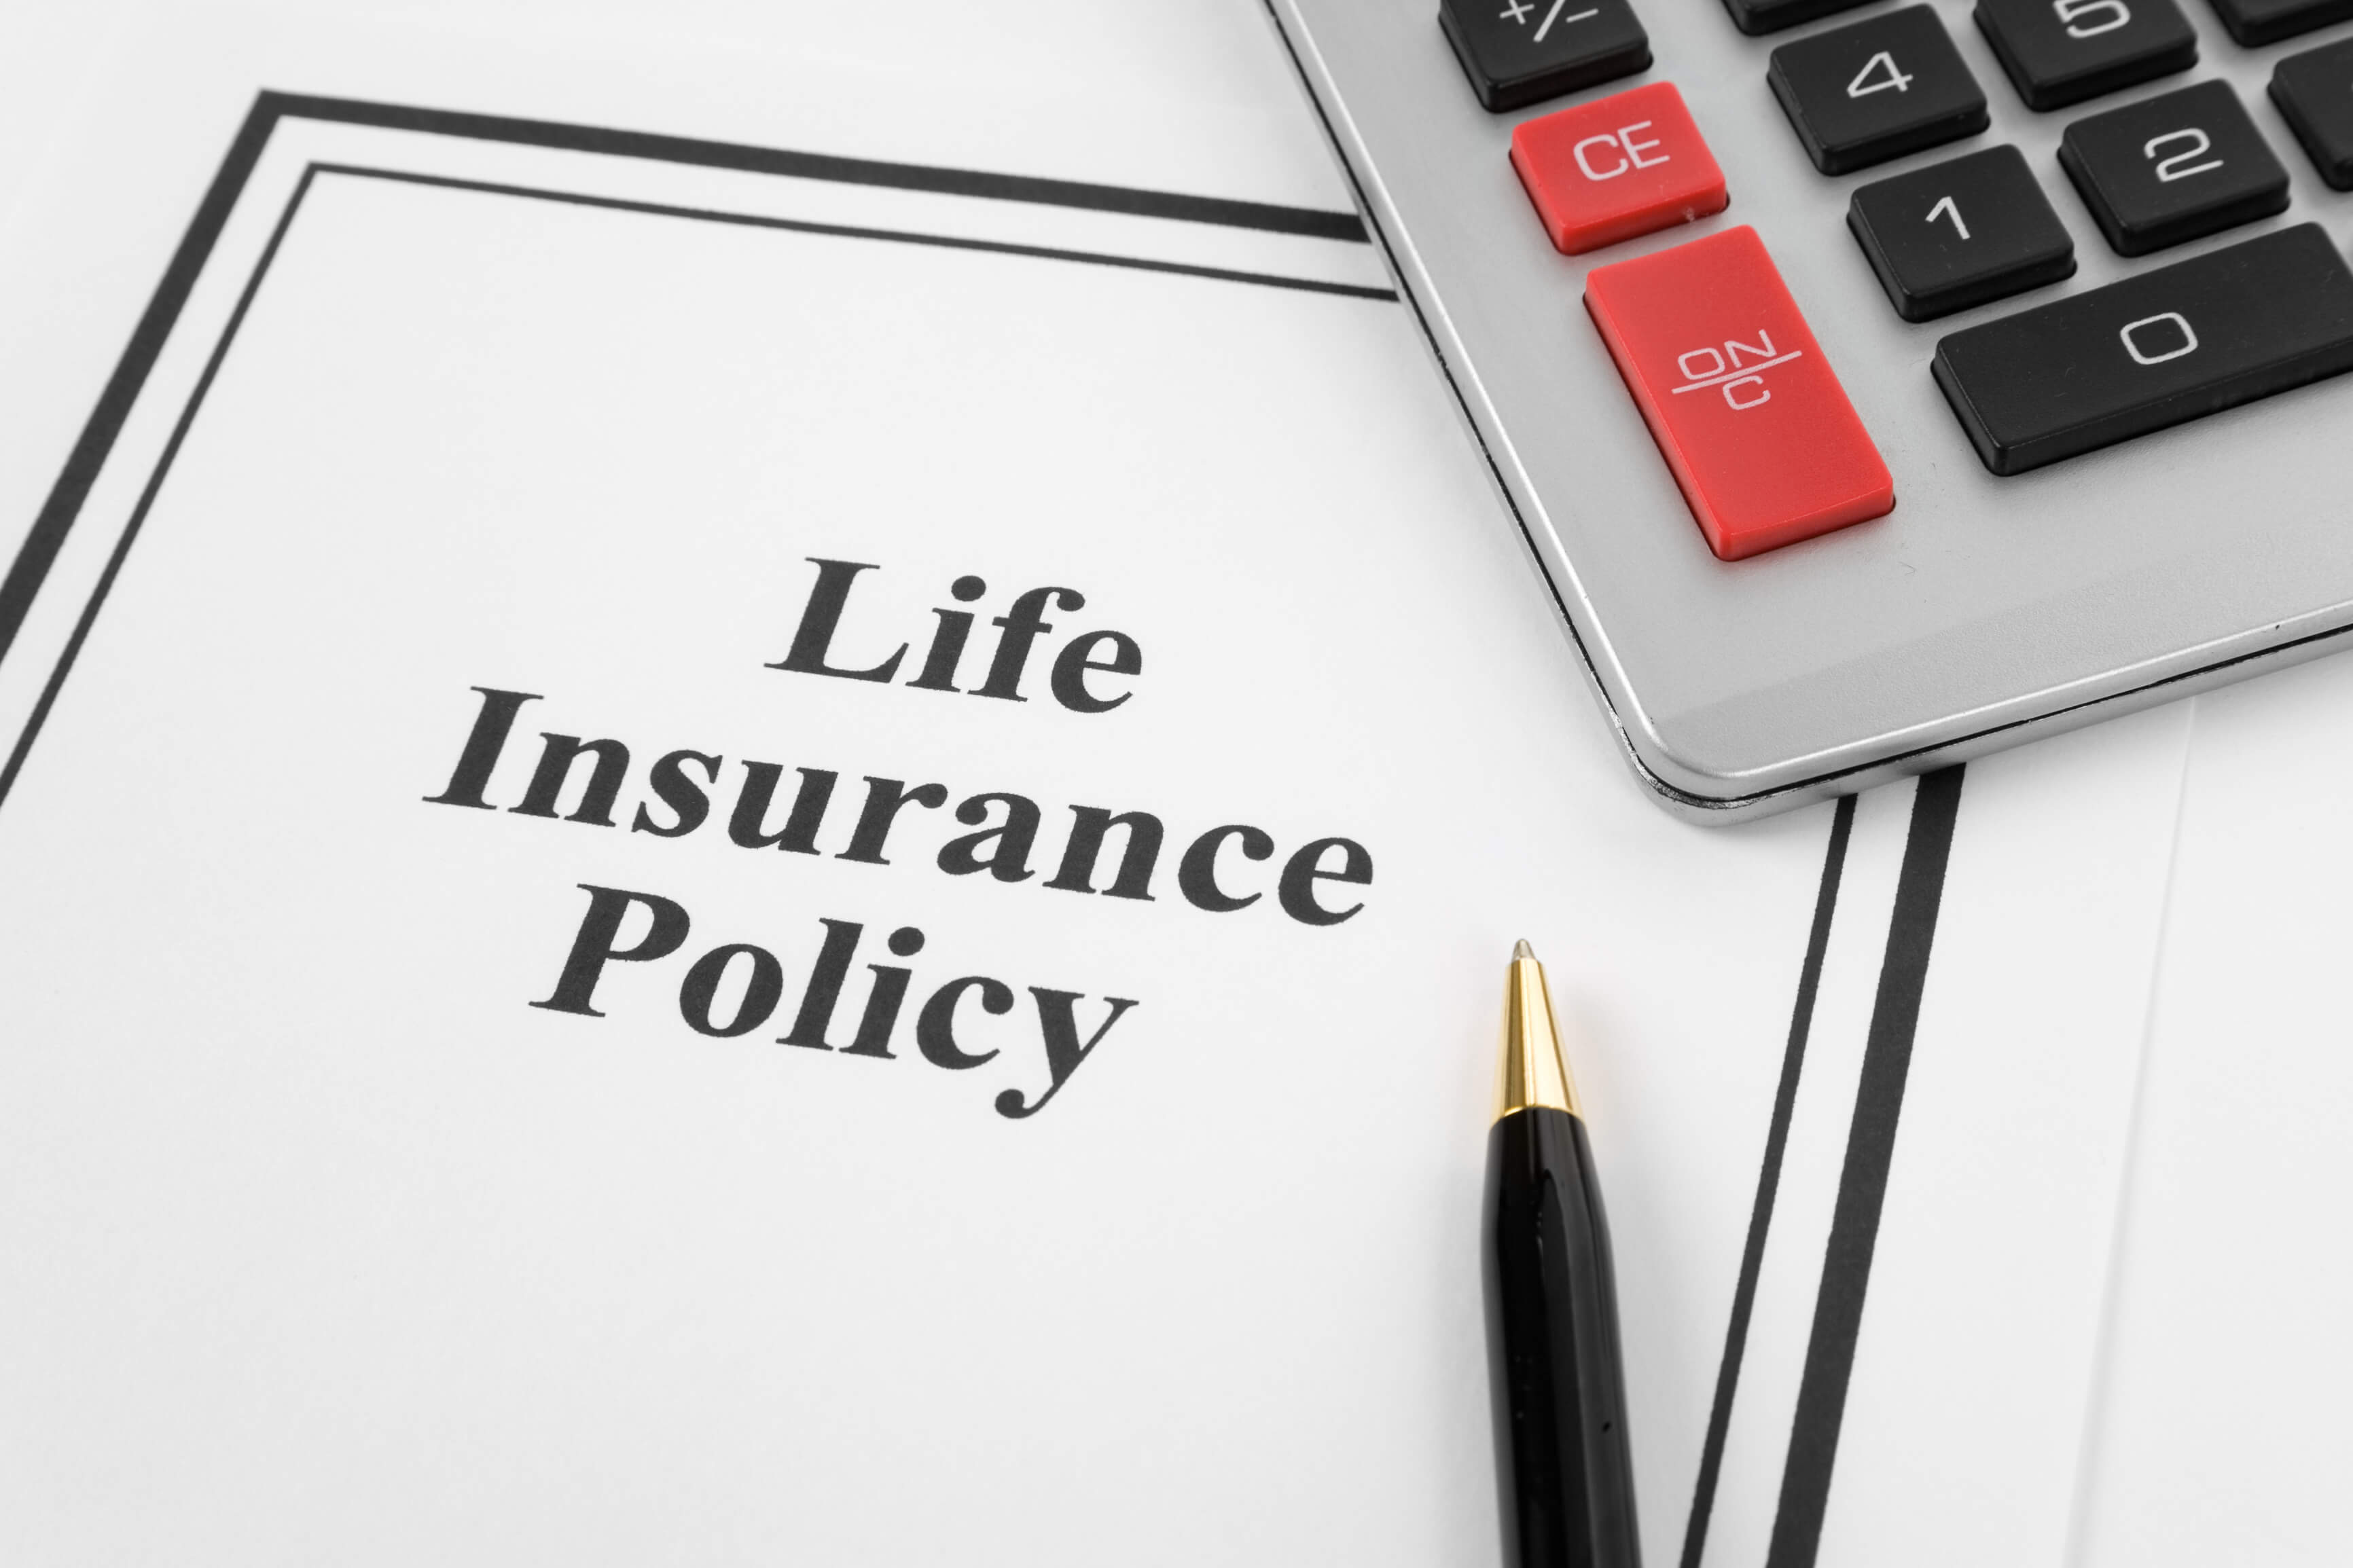 Quotes about Life Insurance Policy (22 quotes)